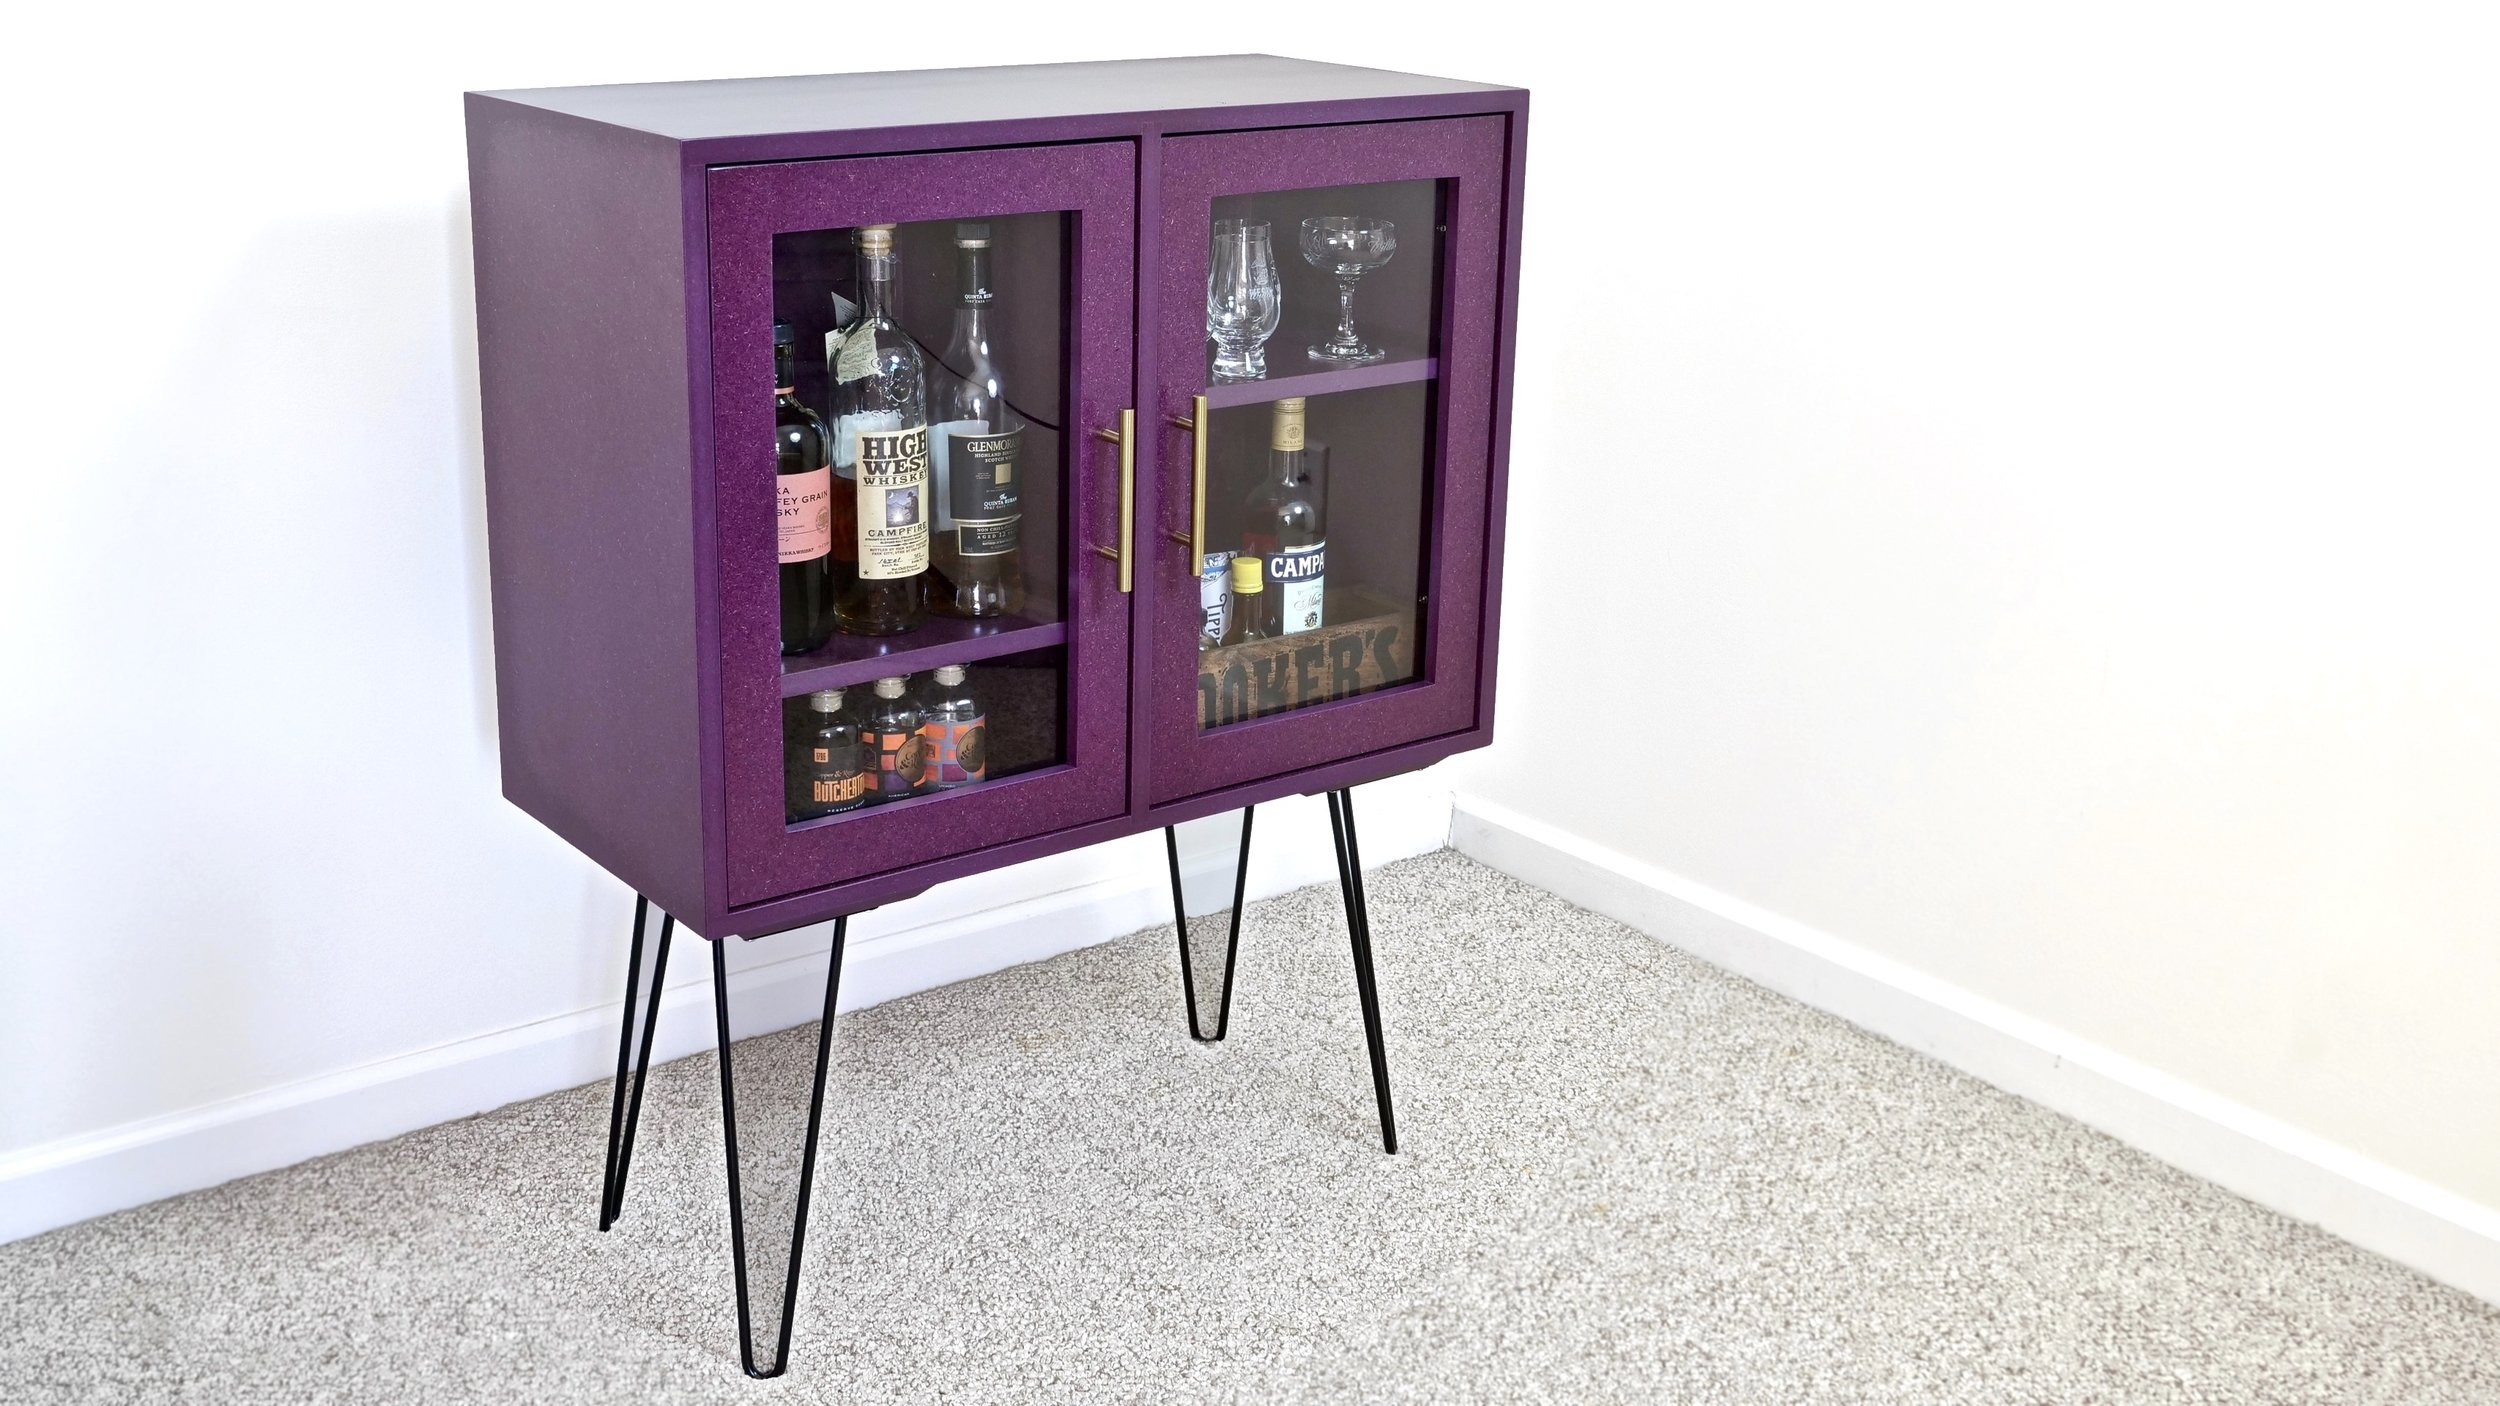 Amazing How To Build A DIY Modern Bar Cabinet / Display Case With Hairpin Legs U2014  Crafted Workshop